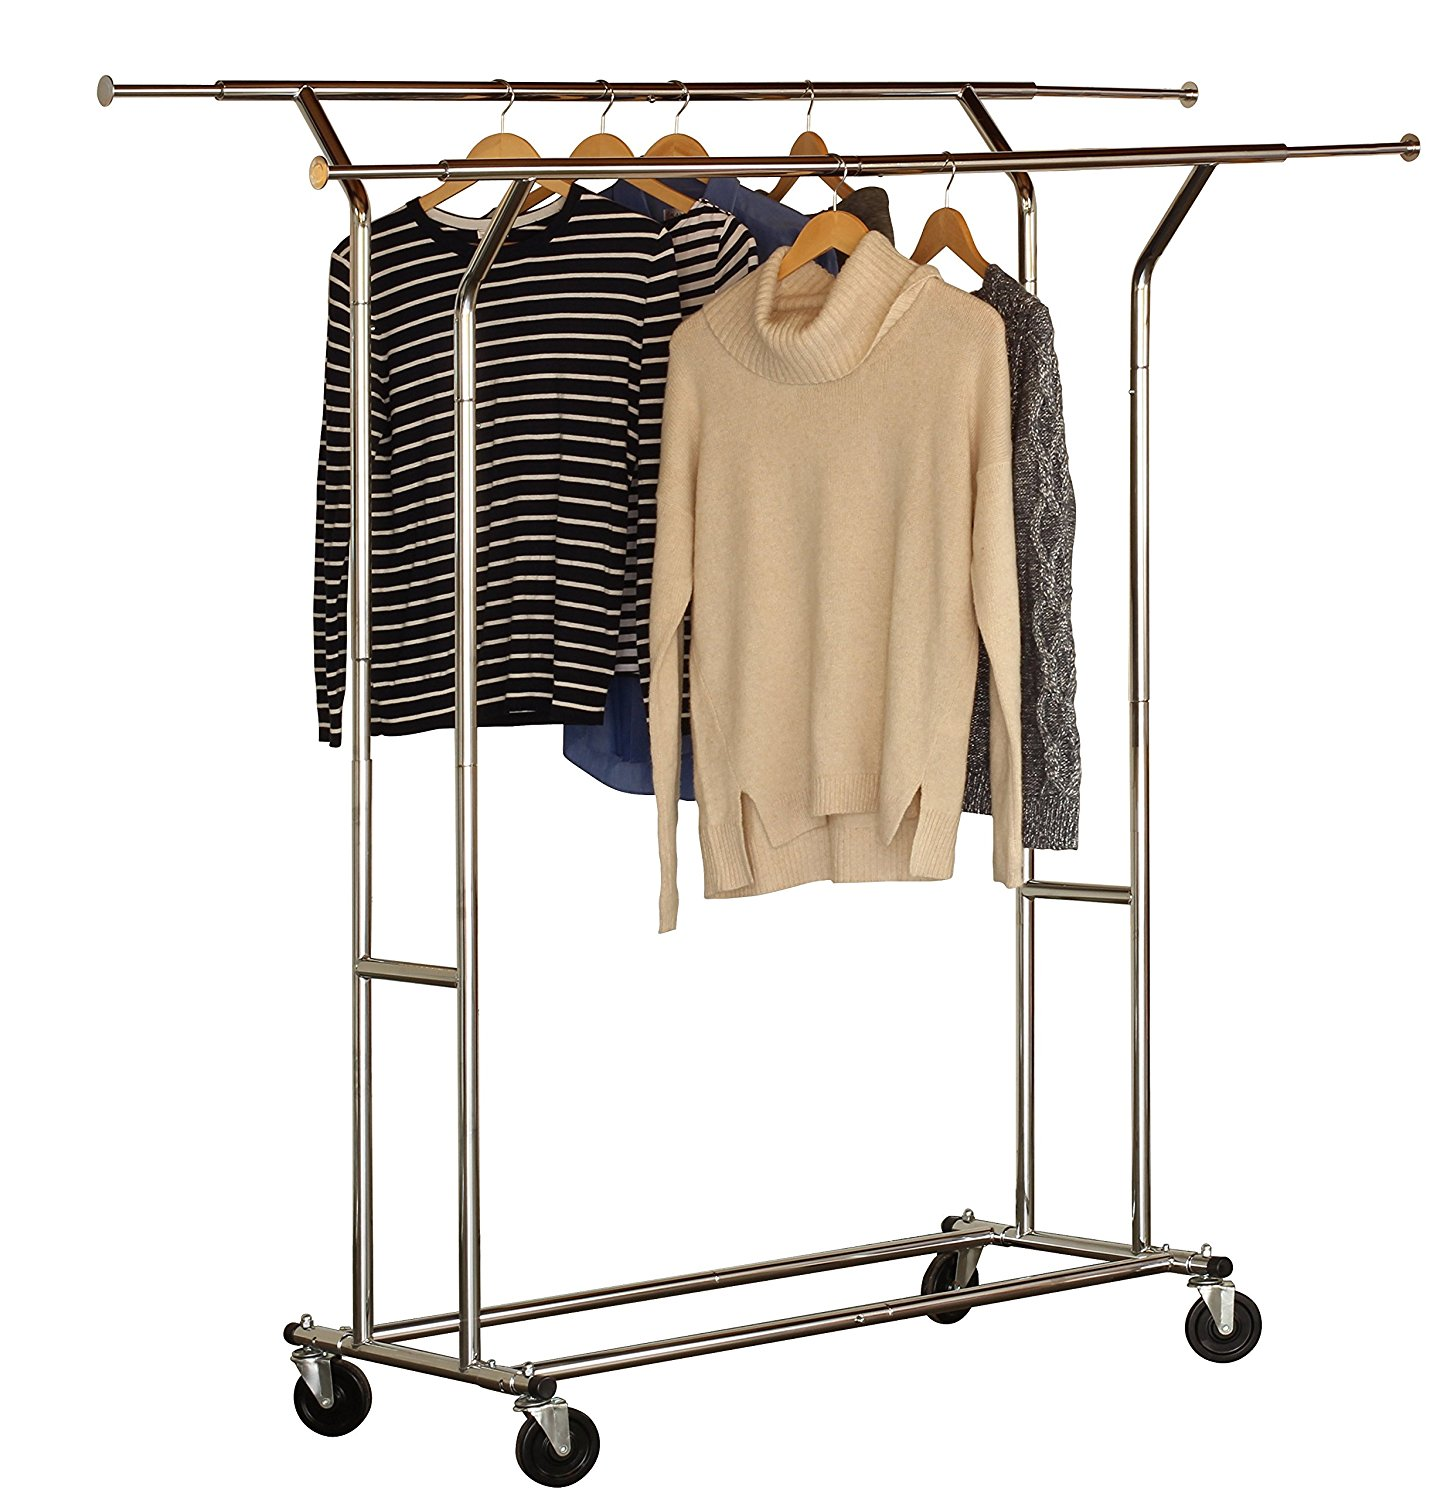 Deco Brothers Double Rail Garment Rack